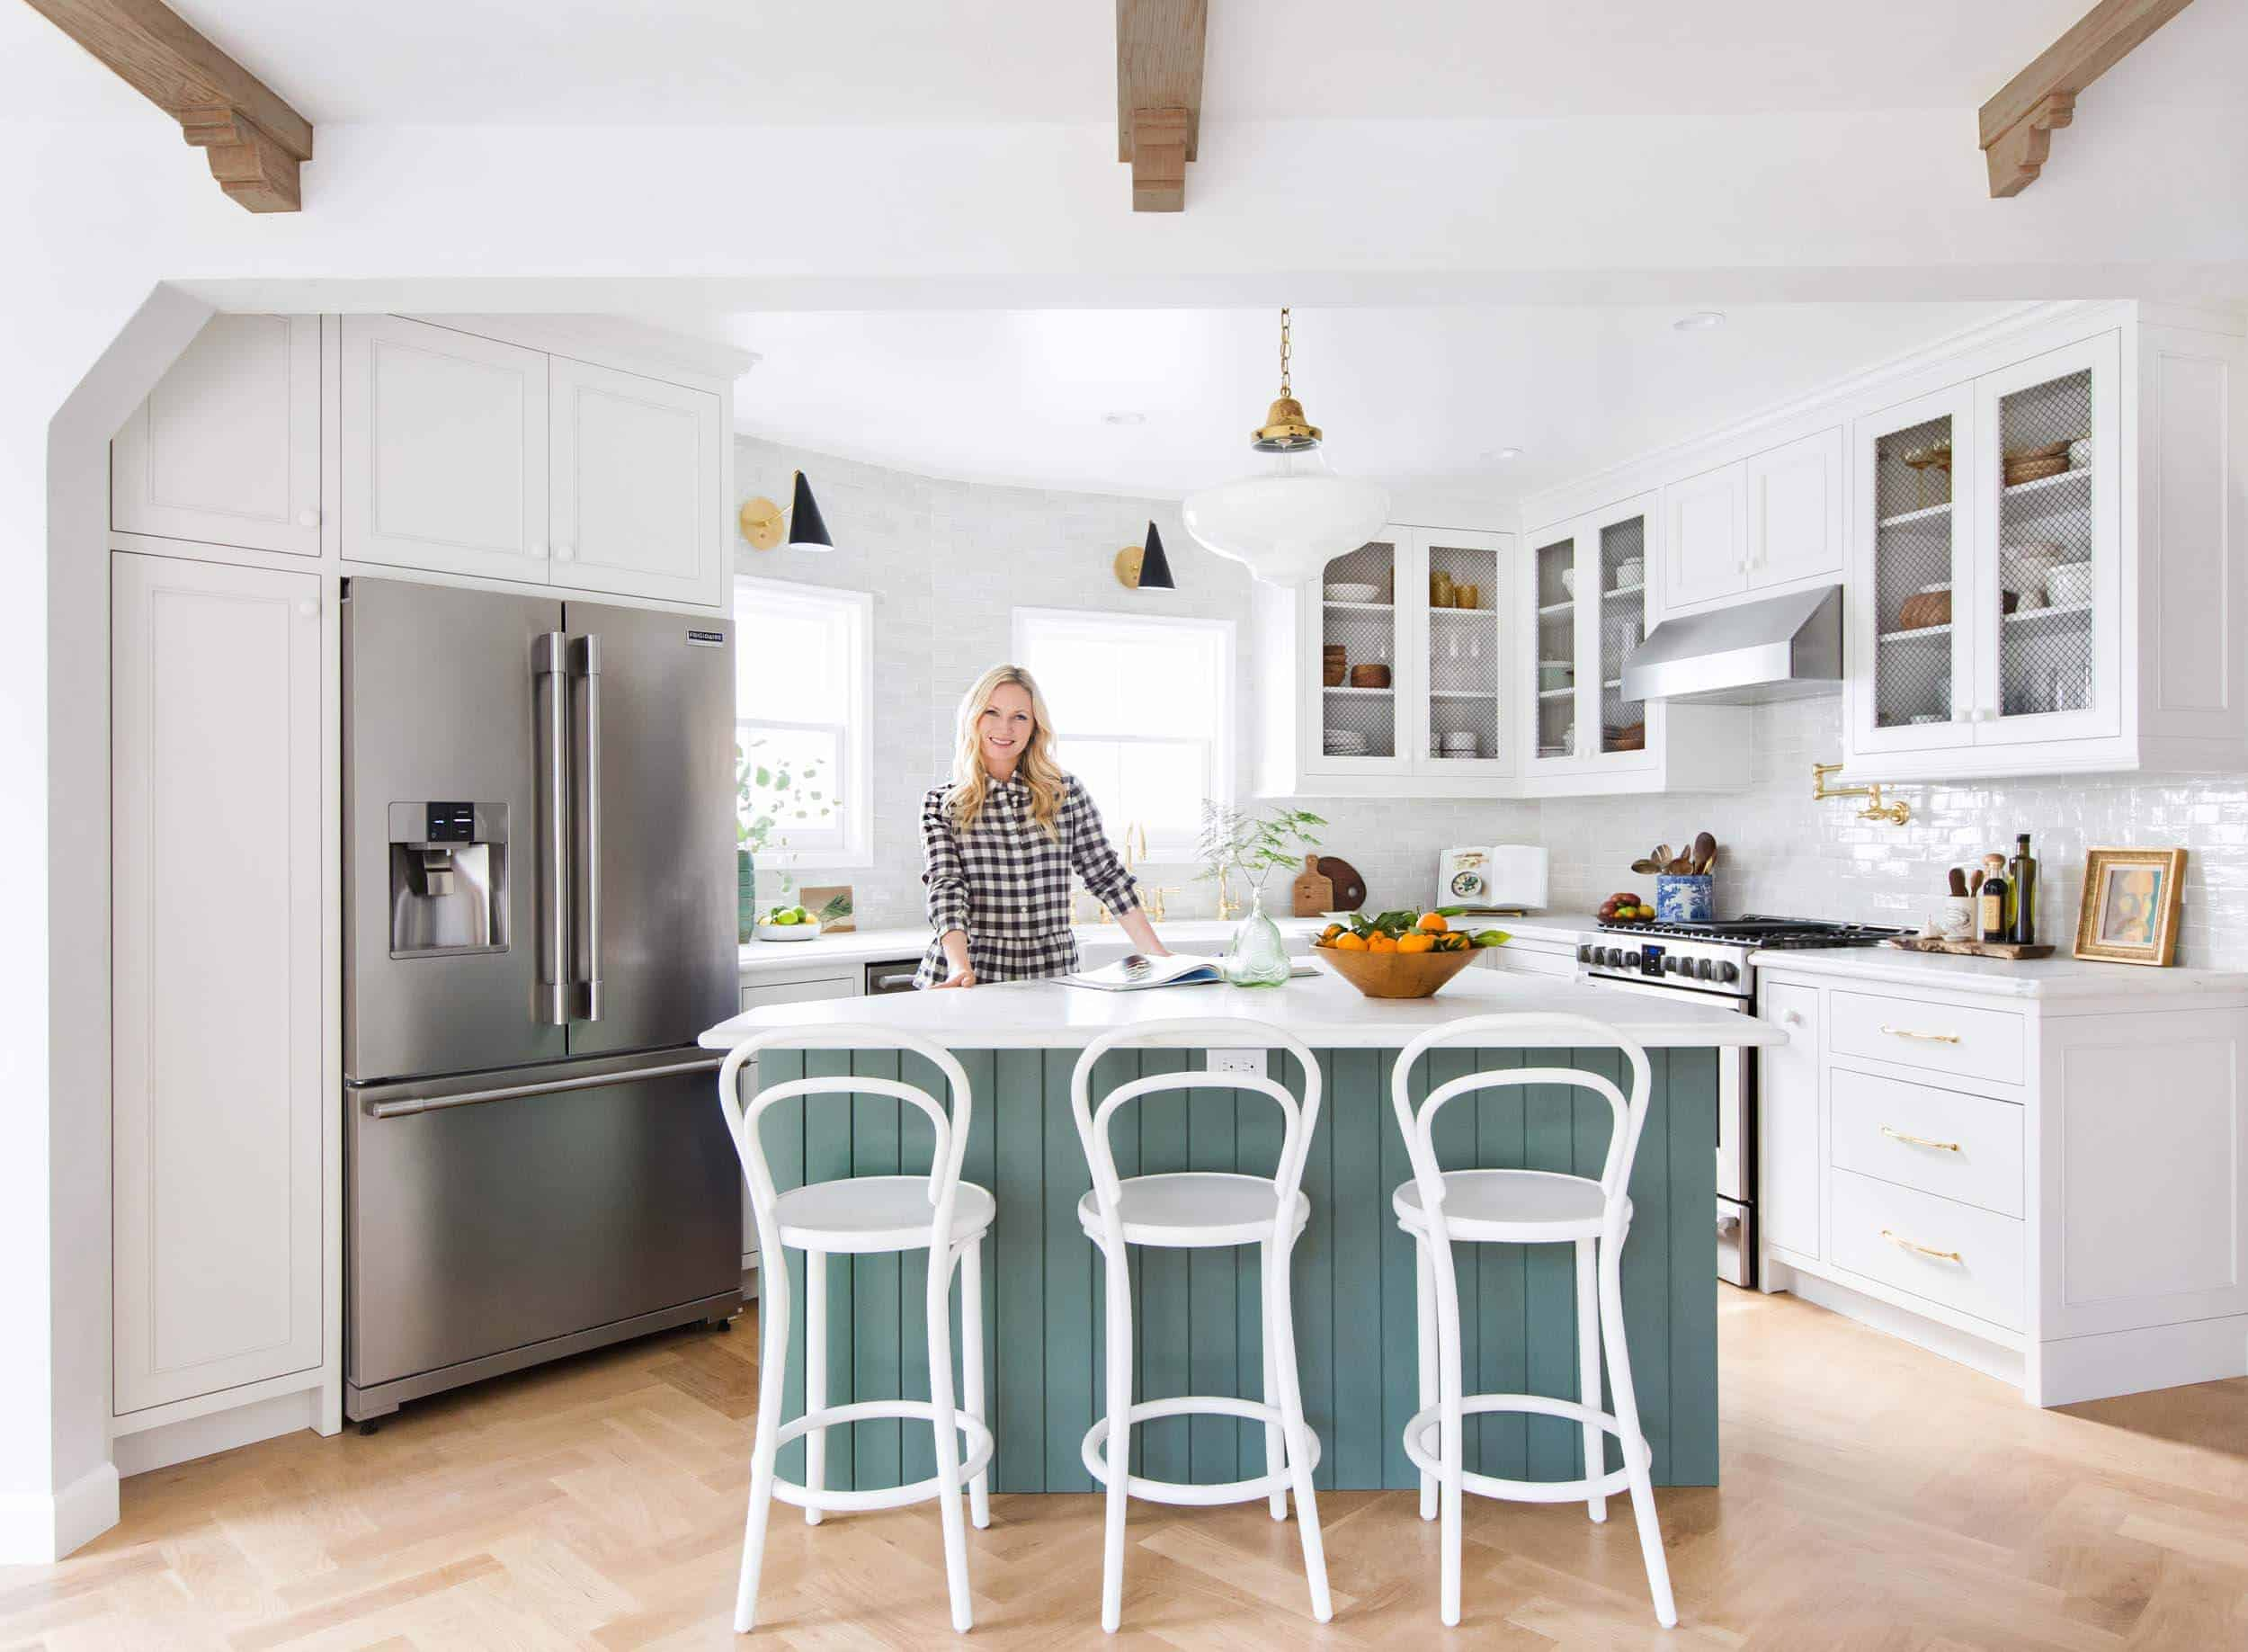 emily-henderson_frigidaire_kitchen-reveal_waverly_english-modern_edited-beams_2